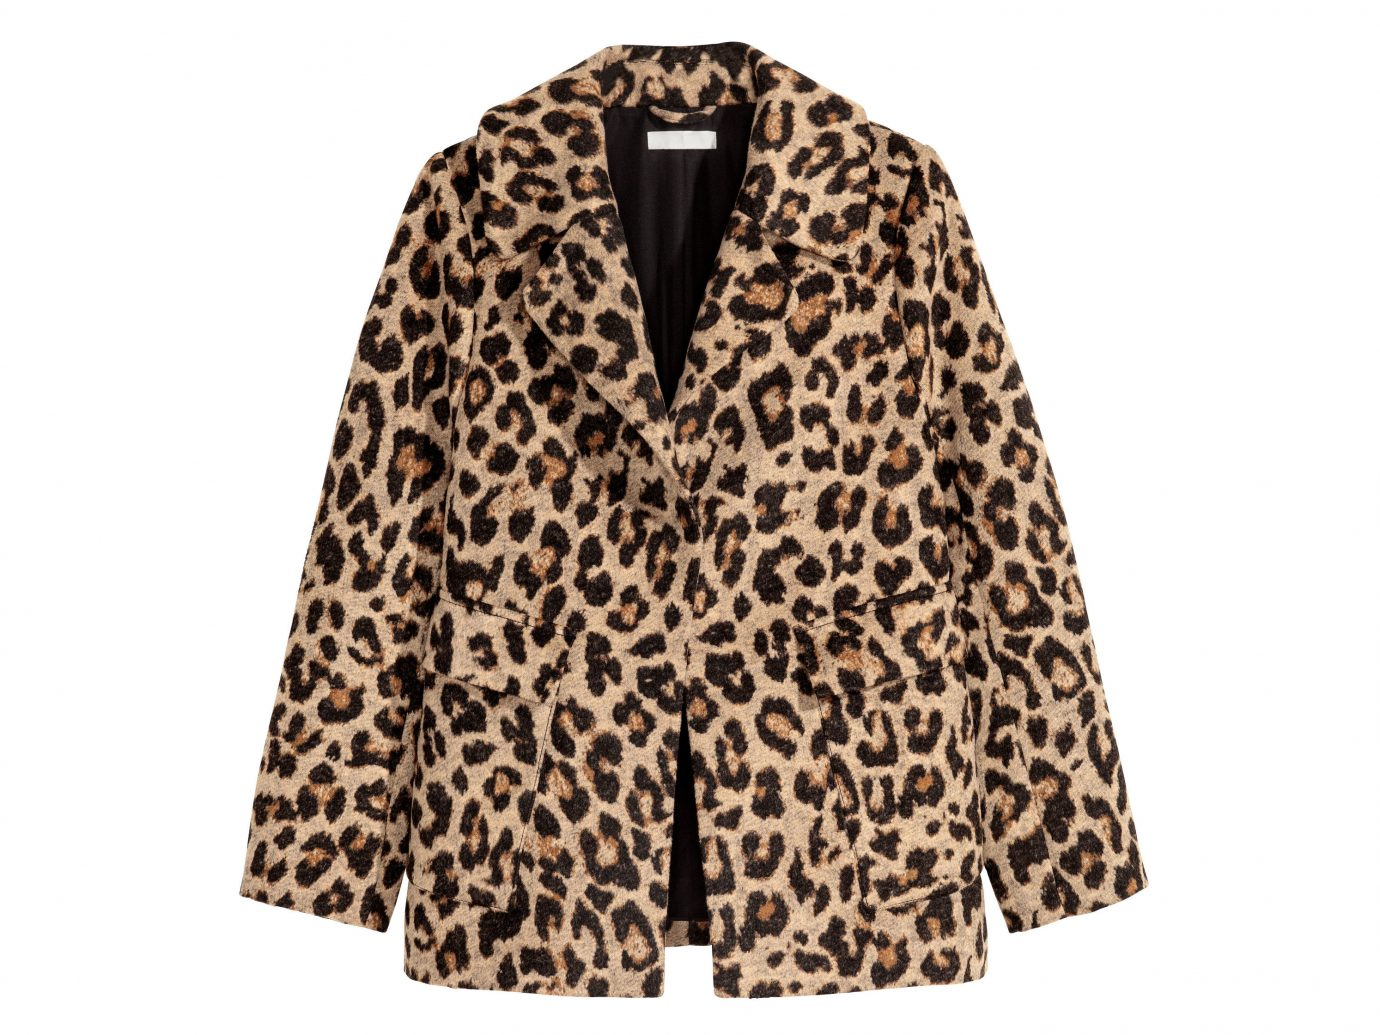 Style + Design clothing jacket outerwear coat sleeve fur costume blazer pattern textile collar